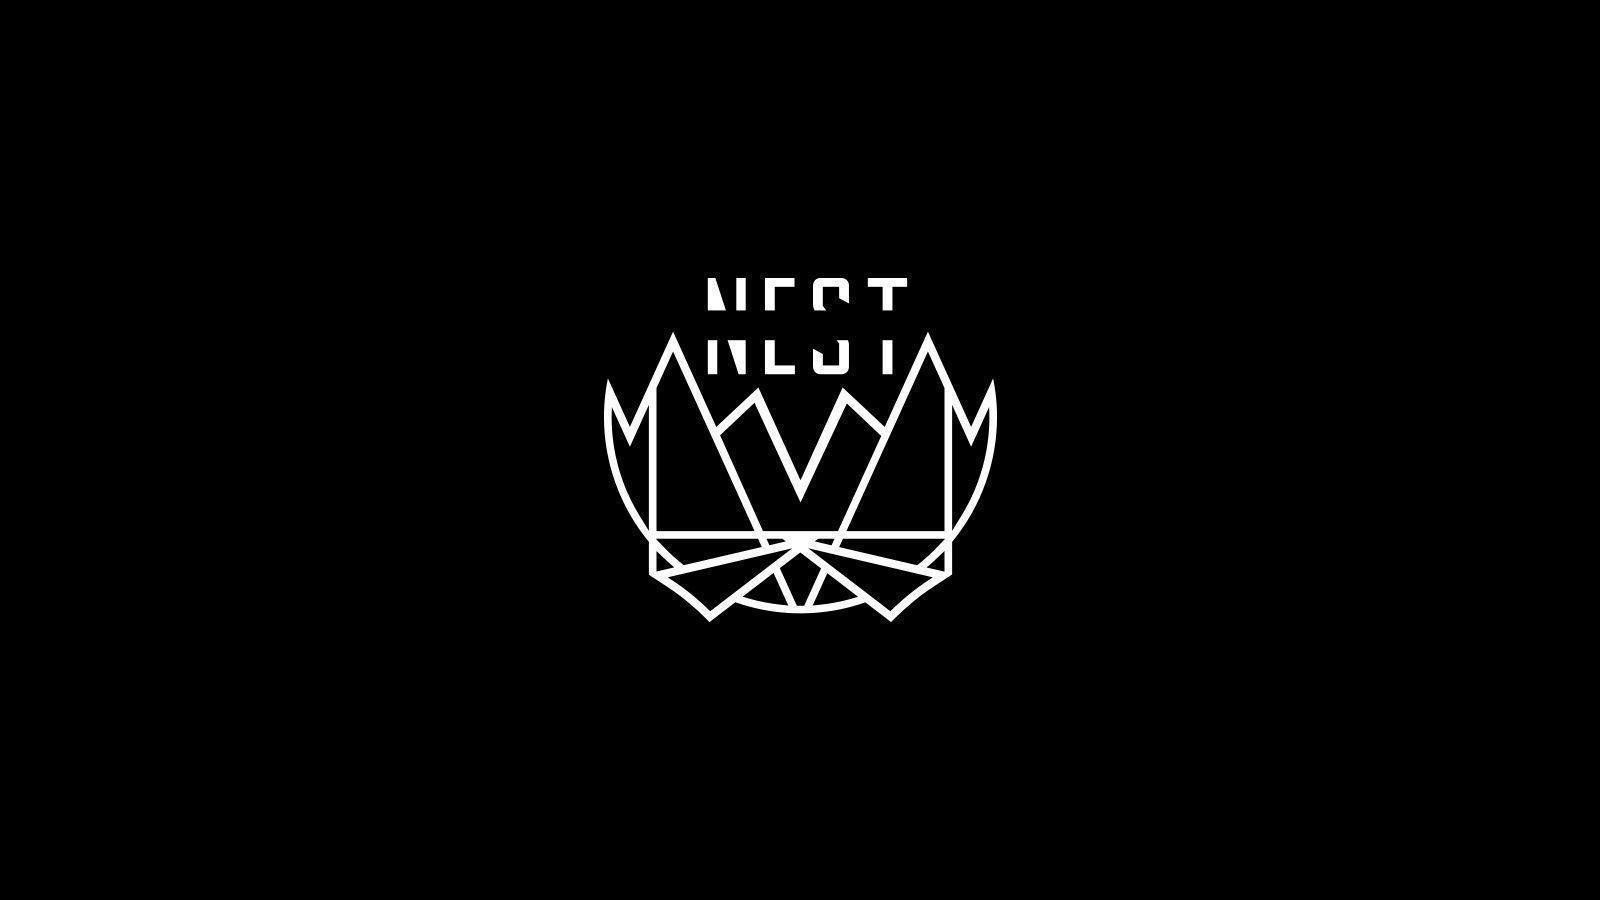 OWSLA Wallpapers by owslawallpapers